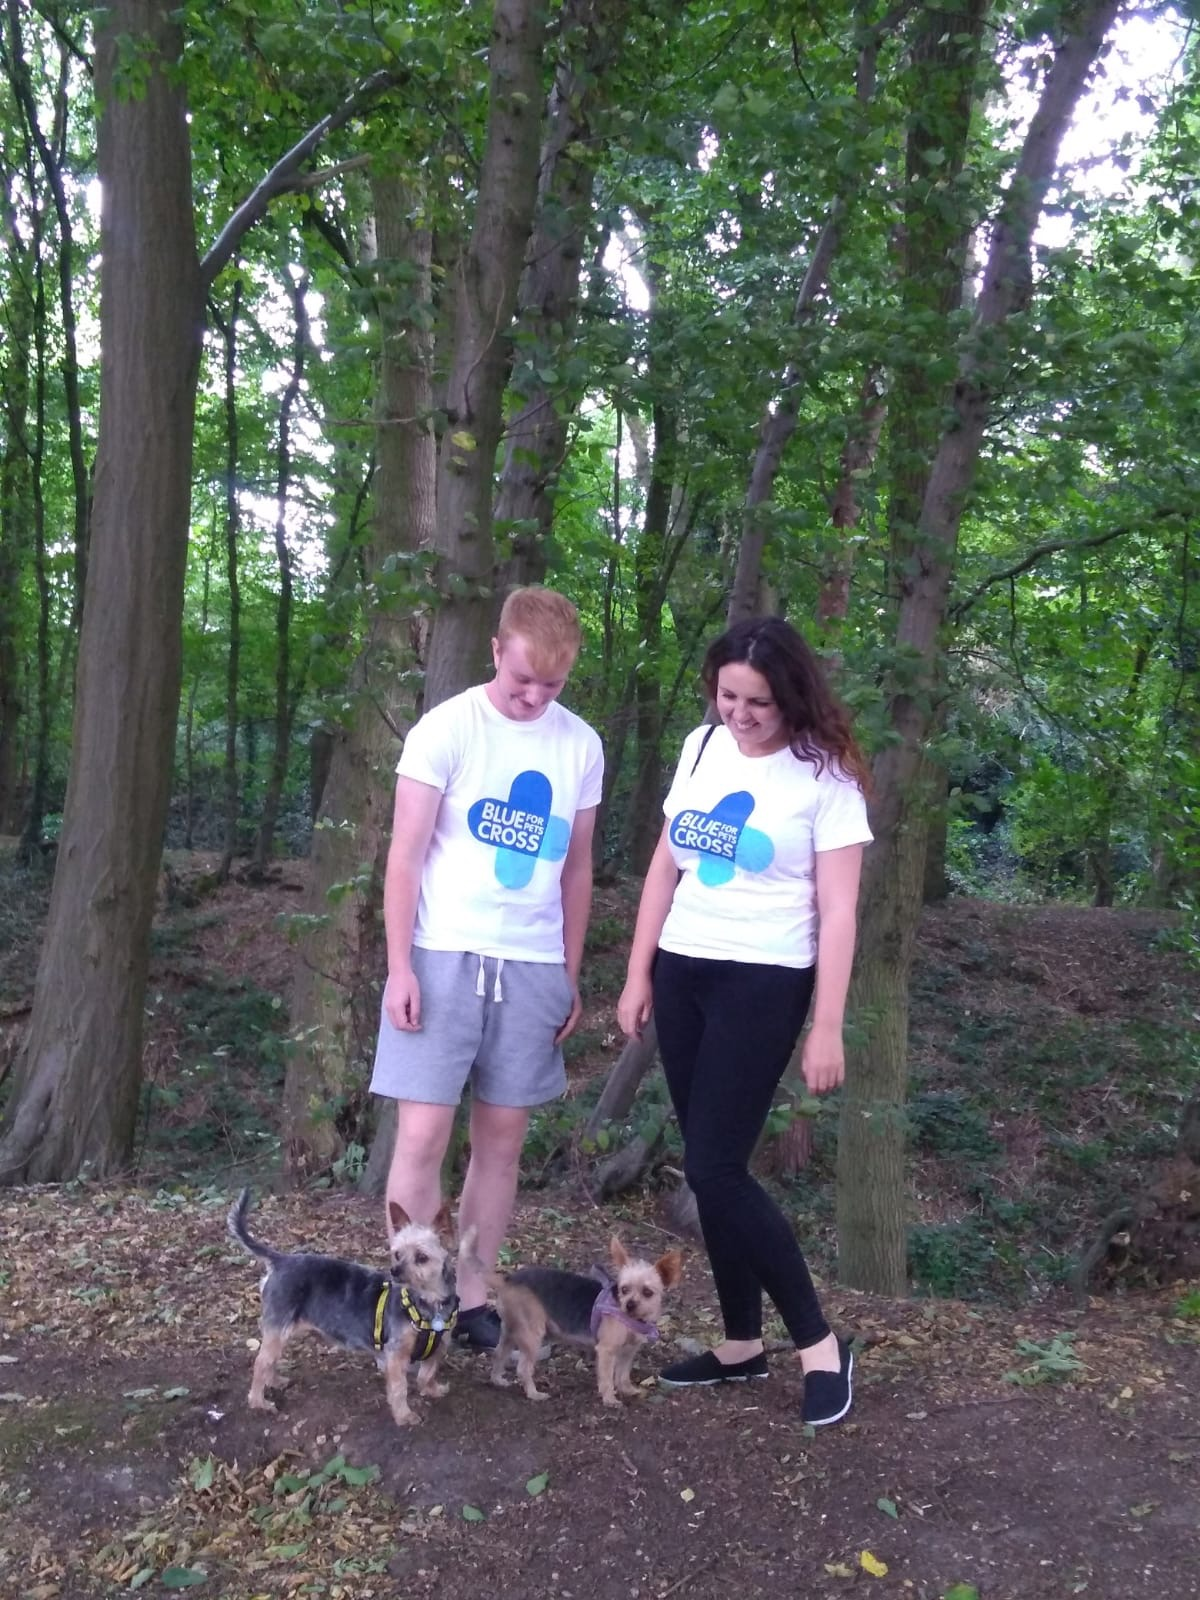 Lisa and Asher in Blue Cross T Shirts with two Yorkshire Terriers